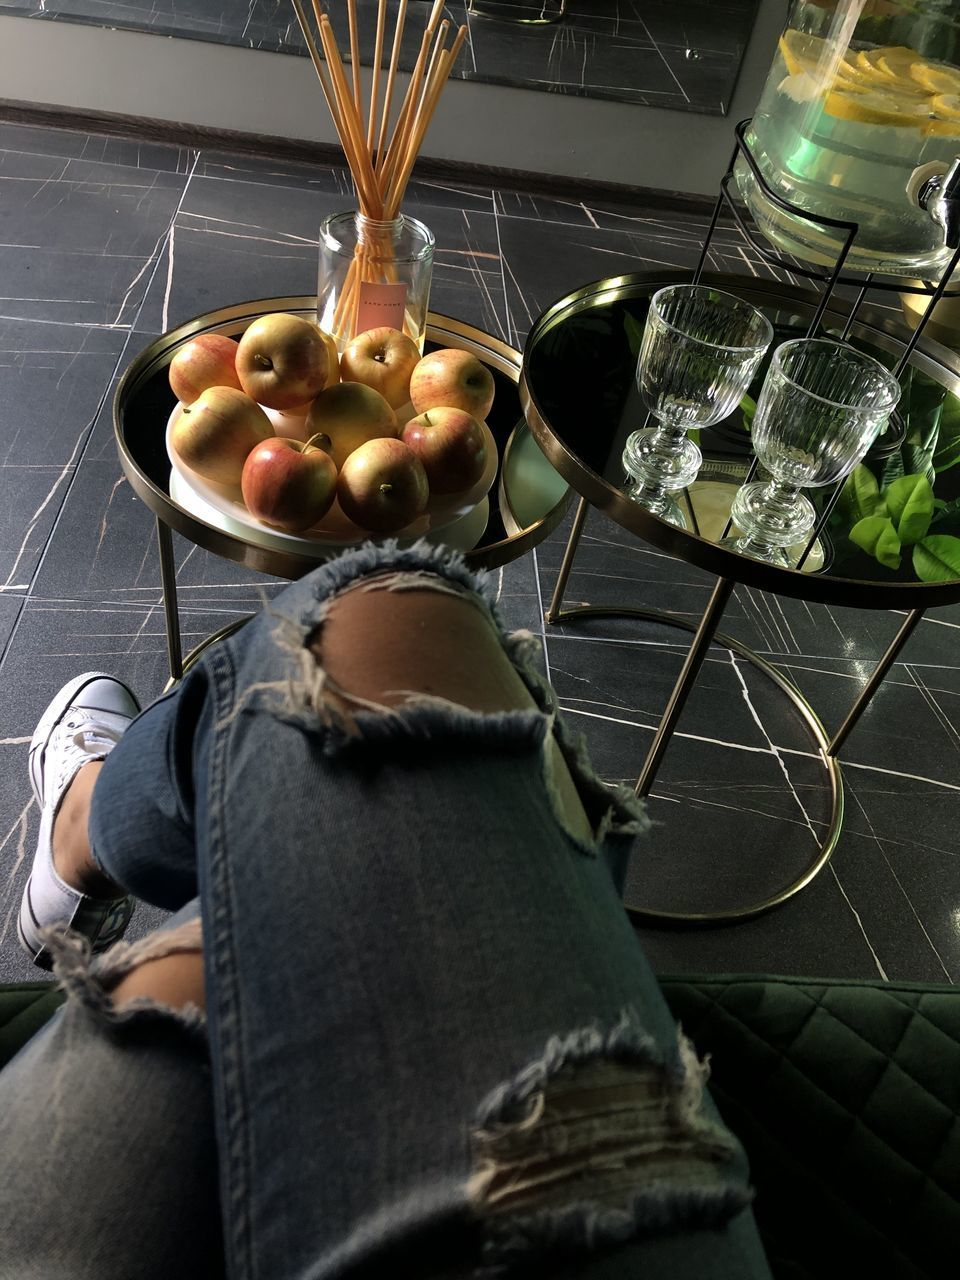 real people, one person, human body part, food and drink, lifestyles, indoors, food, healthy eating, body part, fruit, human leg, low section, freshness, wellbeing, men, high angle view, vegetable, casual clothing, personal perspective, human foot, jeans